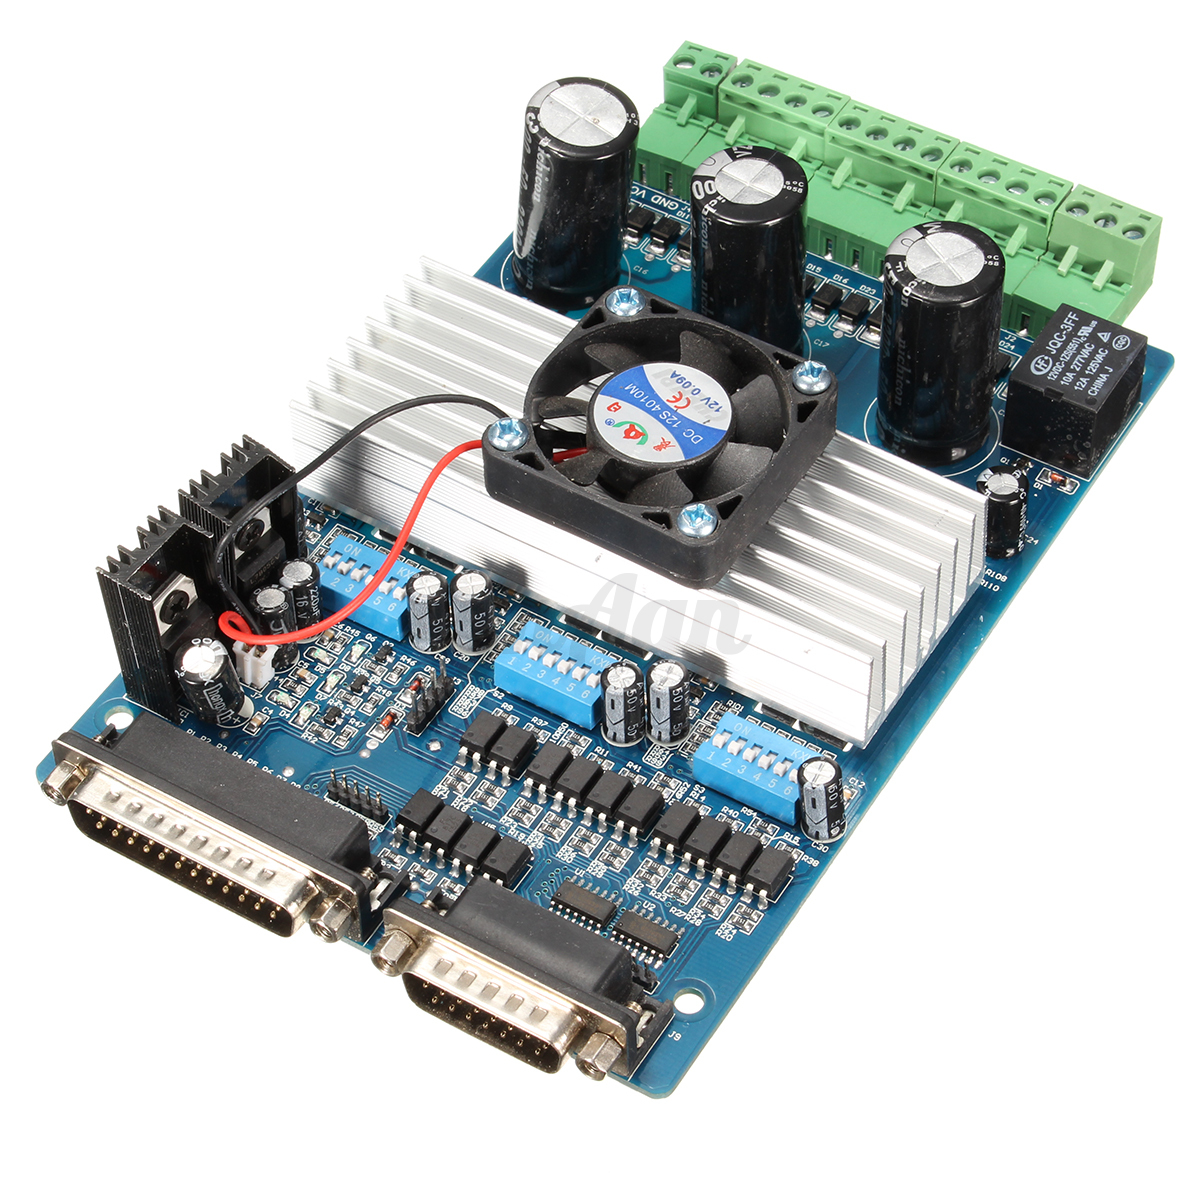 Cnc 3 axis tb6560 stepper motor driver controller board for Controlling a stepper motor